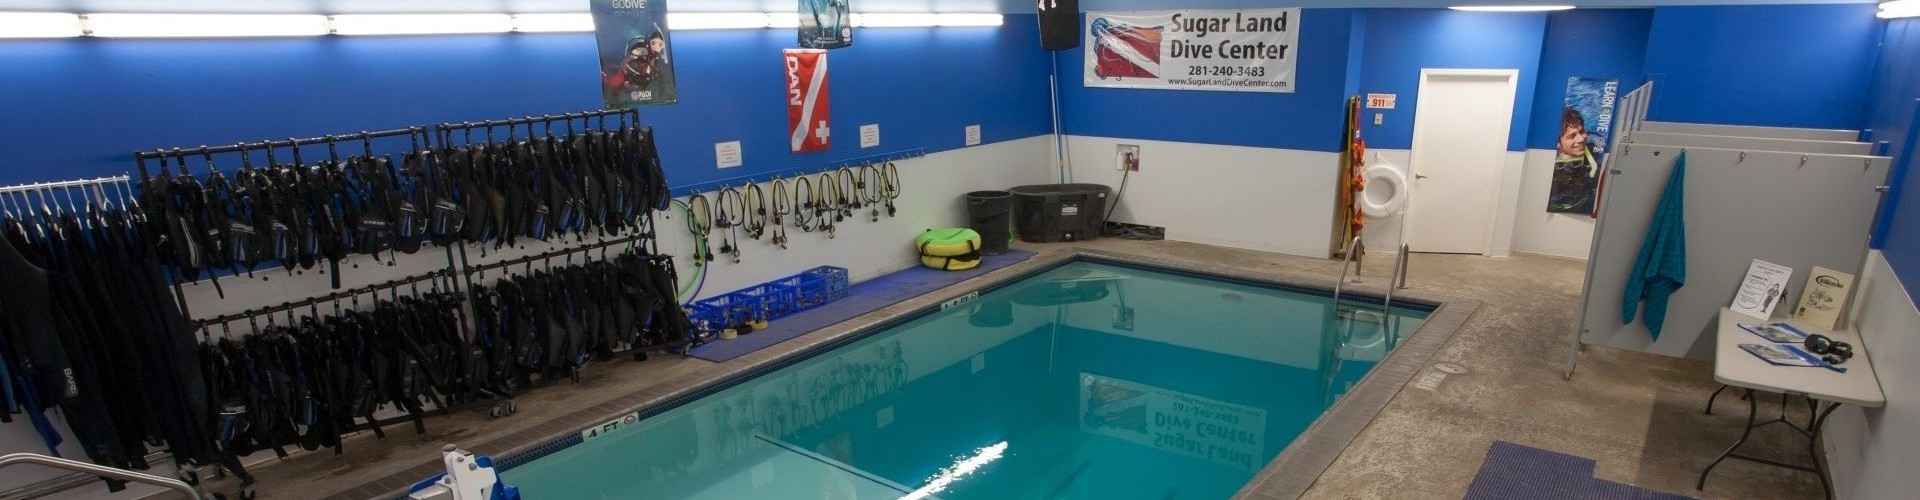 2 - Sugar Land Dive Center Pool